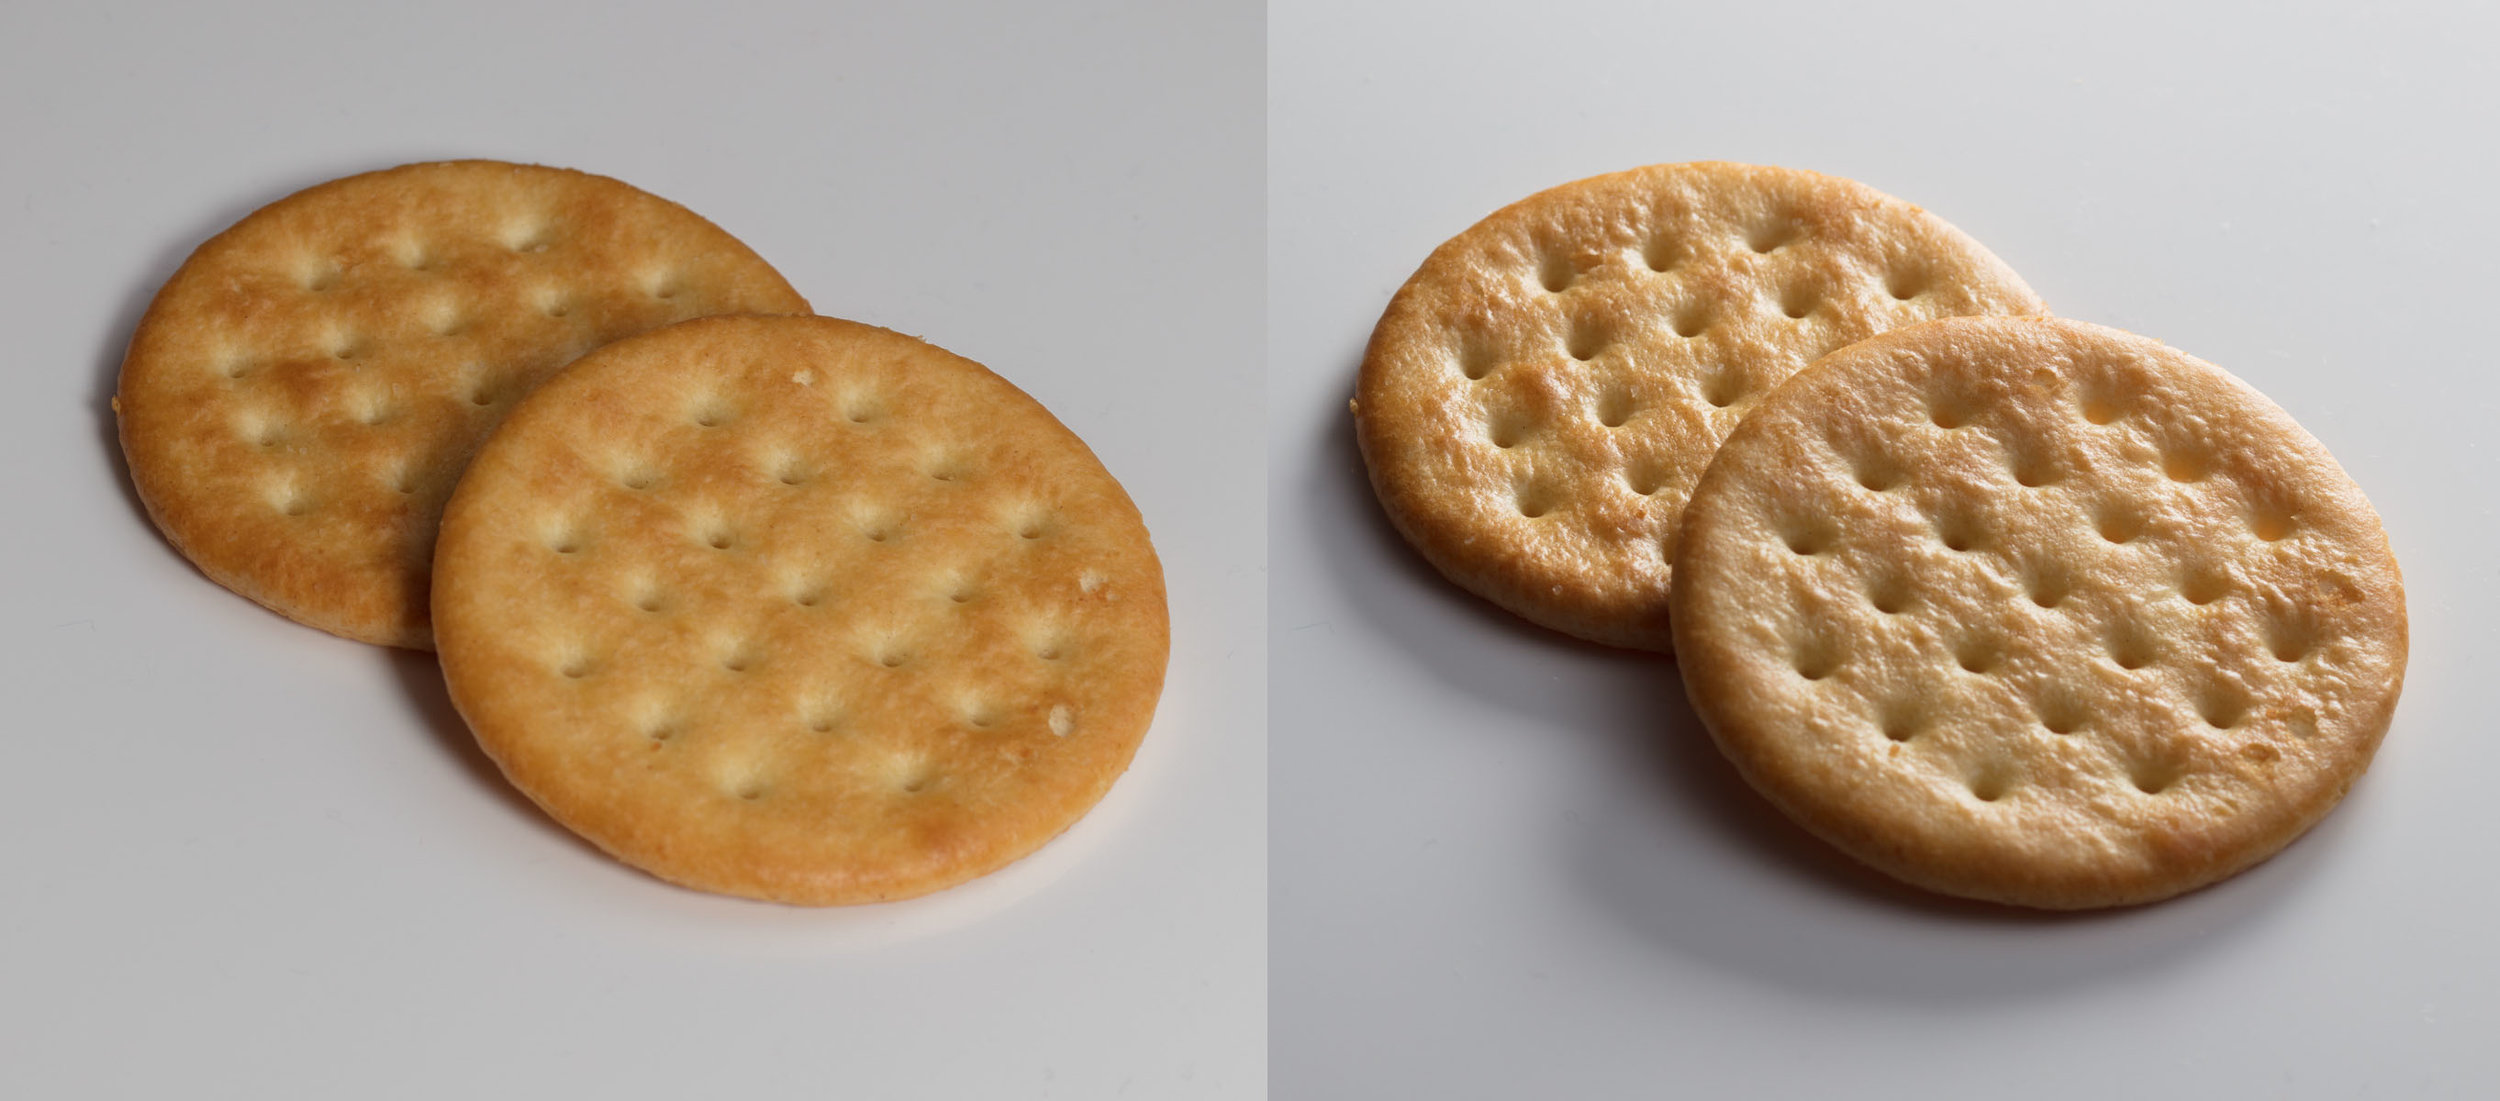 Just one more demonstration. The image on the left was shot in what would be lovely portrait lighting, but does nothing to show the texture. The image on right was shot with a raking light, low down, so that it skims over the surface and reveals all of the texture.